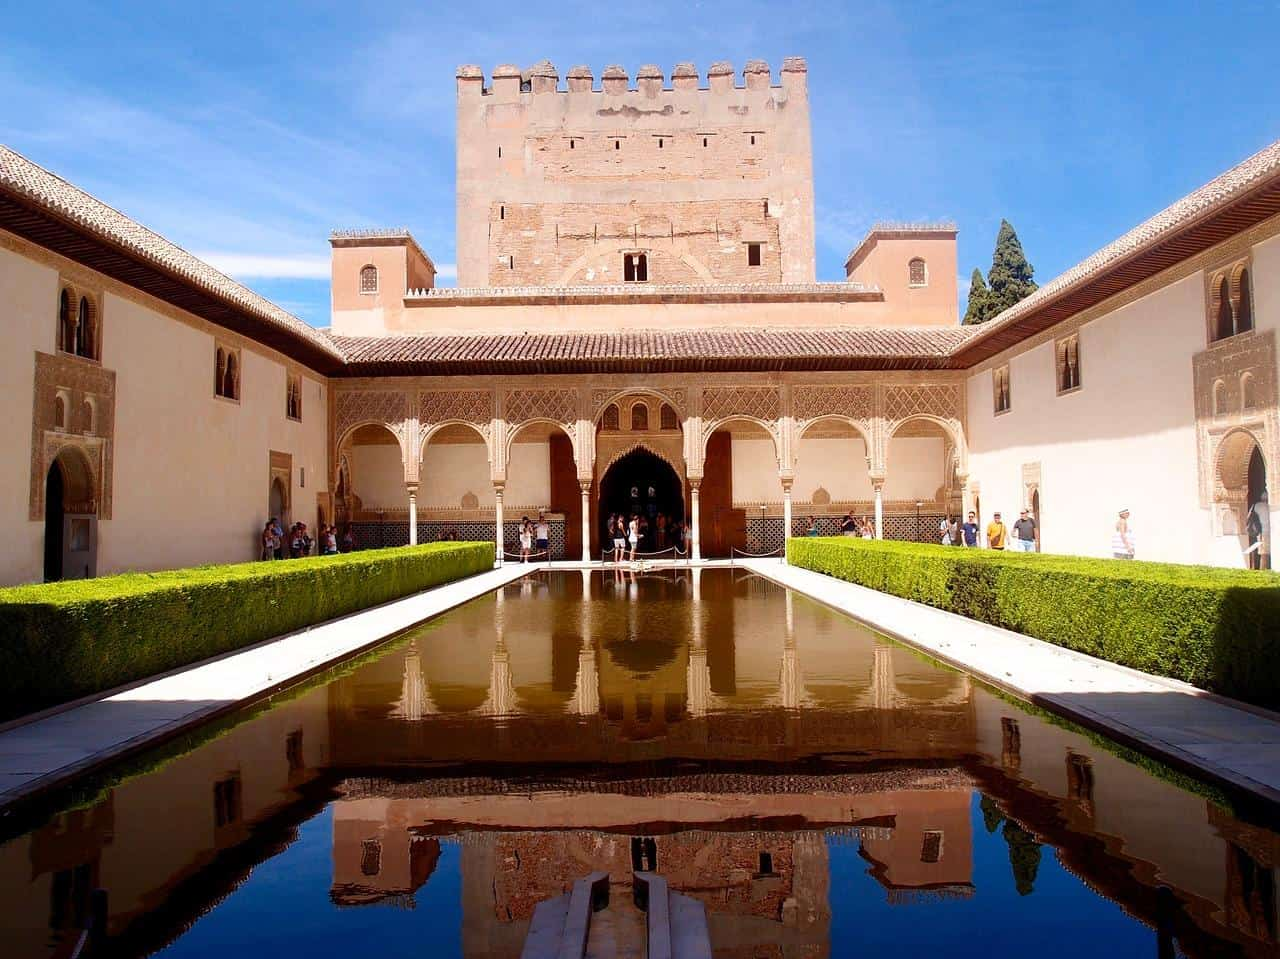 Court of the Myrtles Alhambra